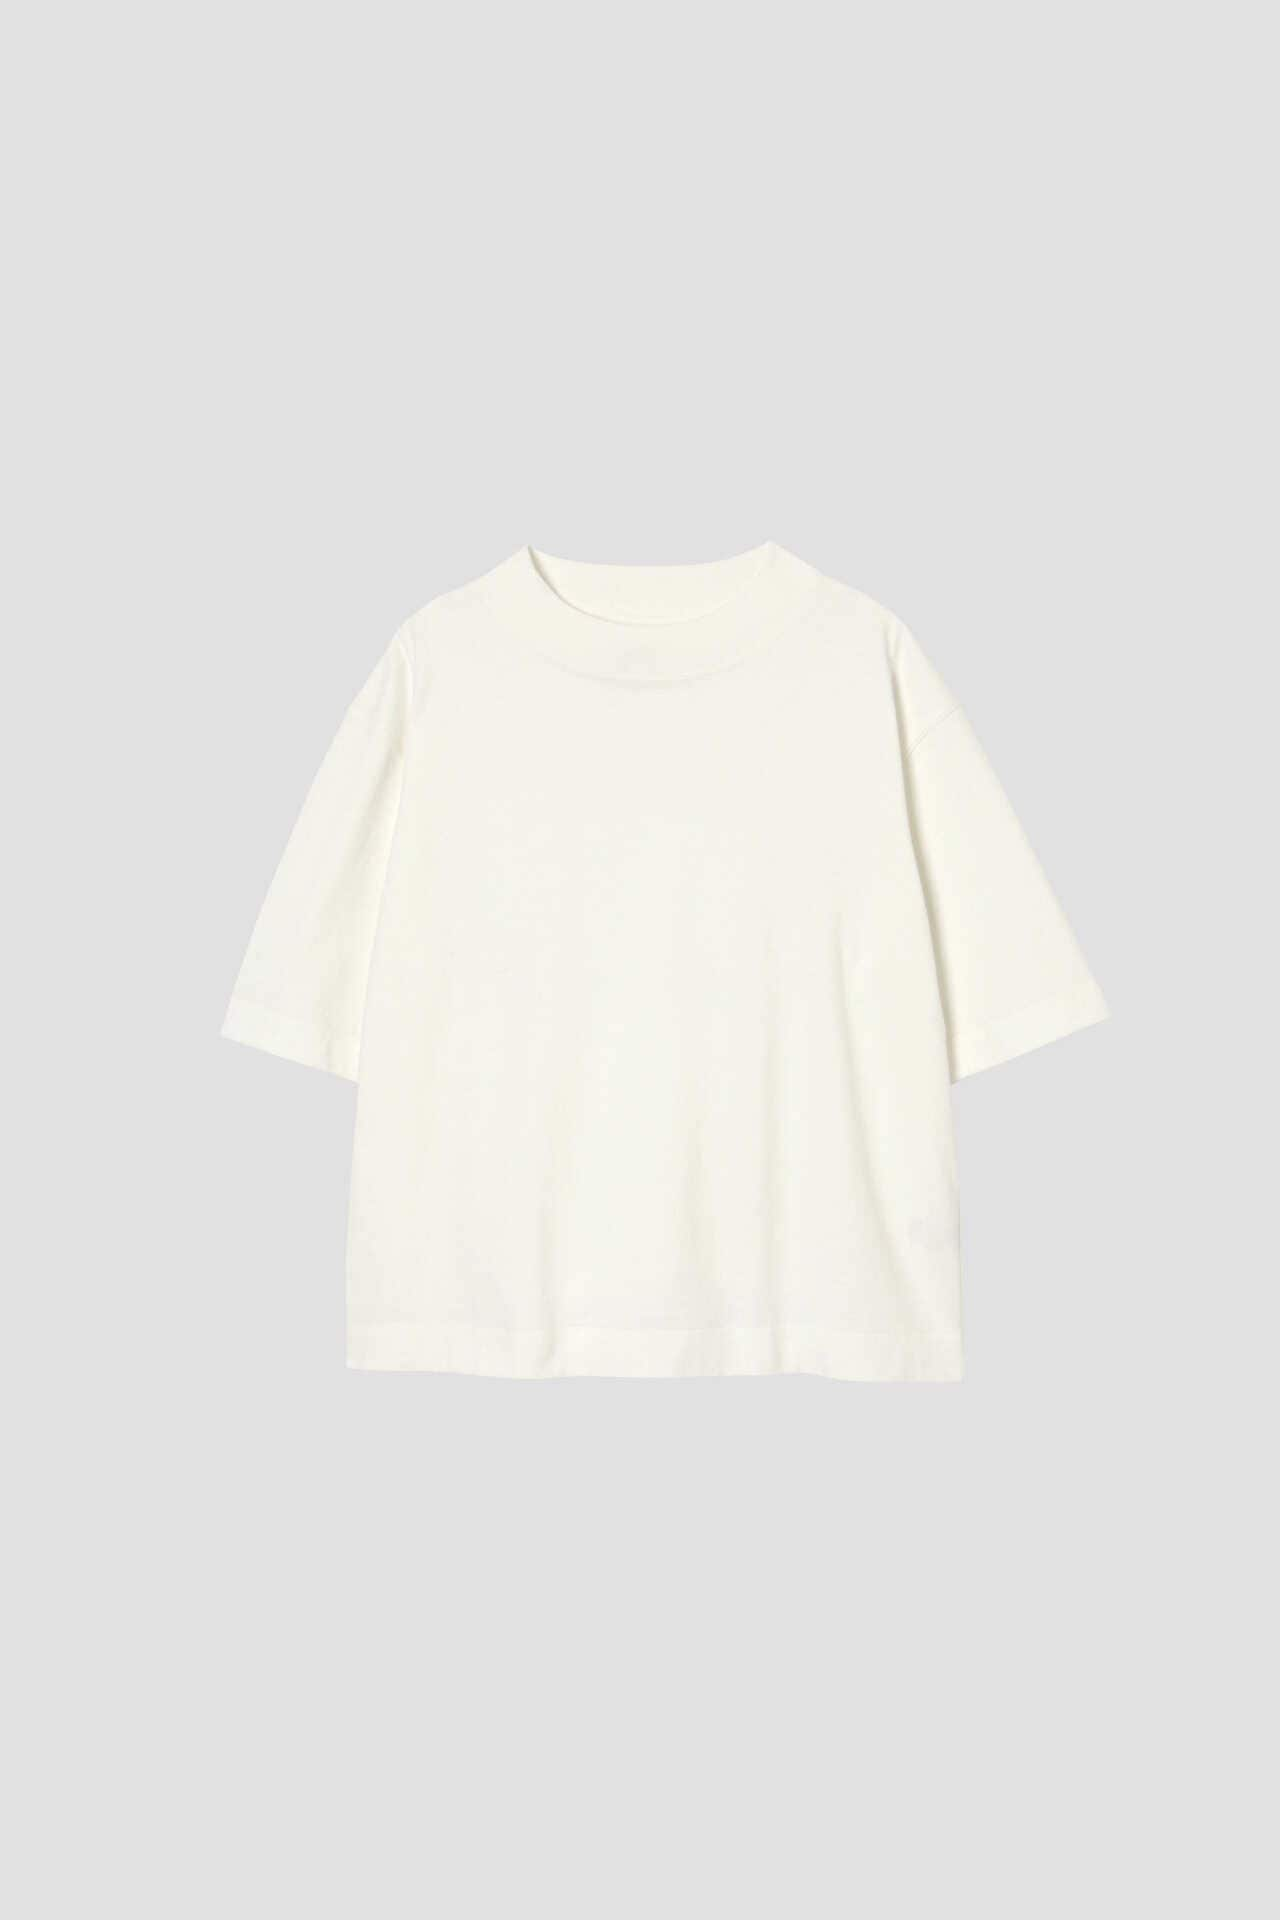 NATURAL COTTON JERSEY1